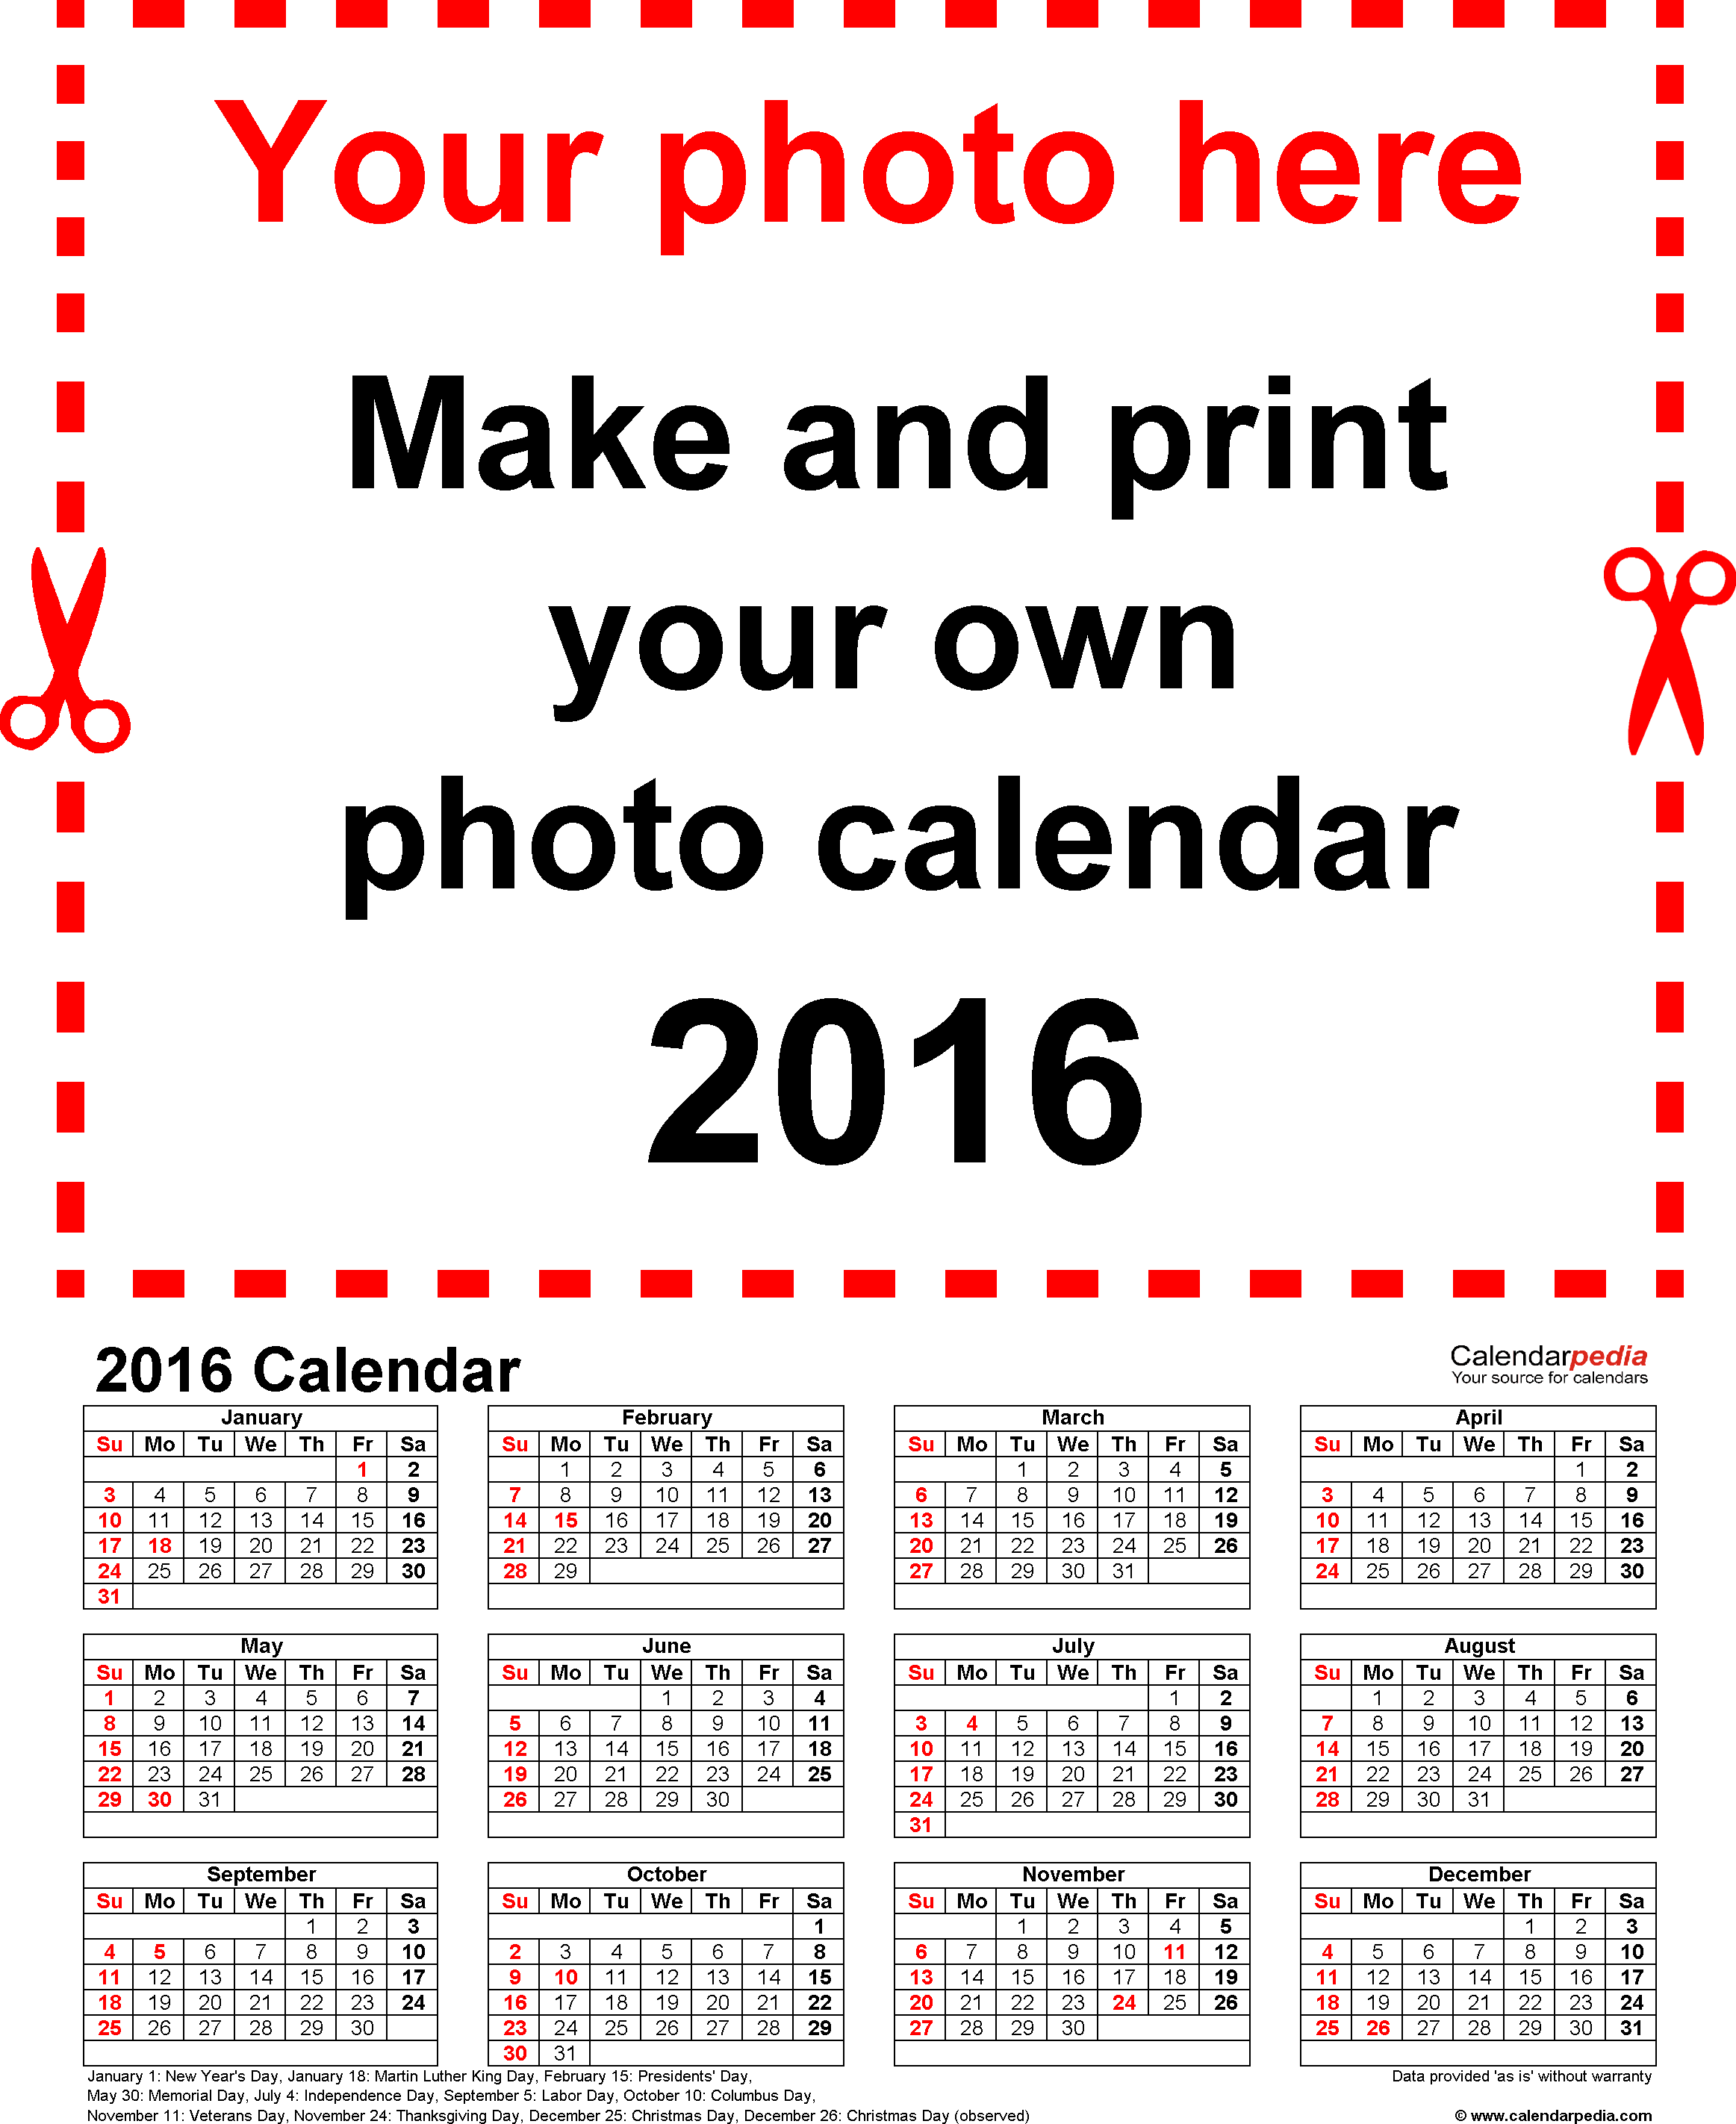 Download Template 4: Photo calendar 2016 for Excel, portrait format, whole year on one page